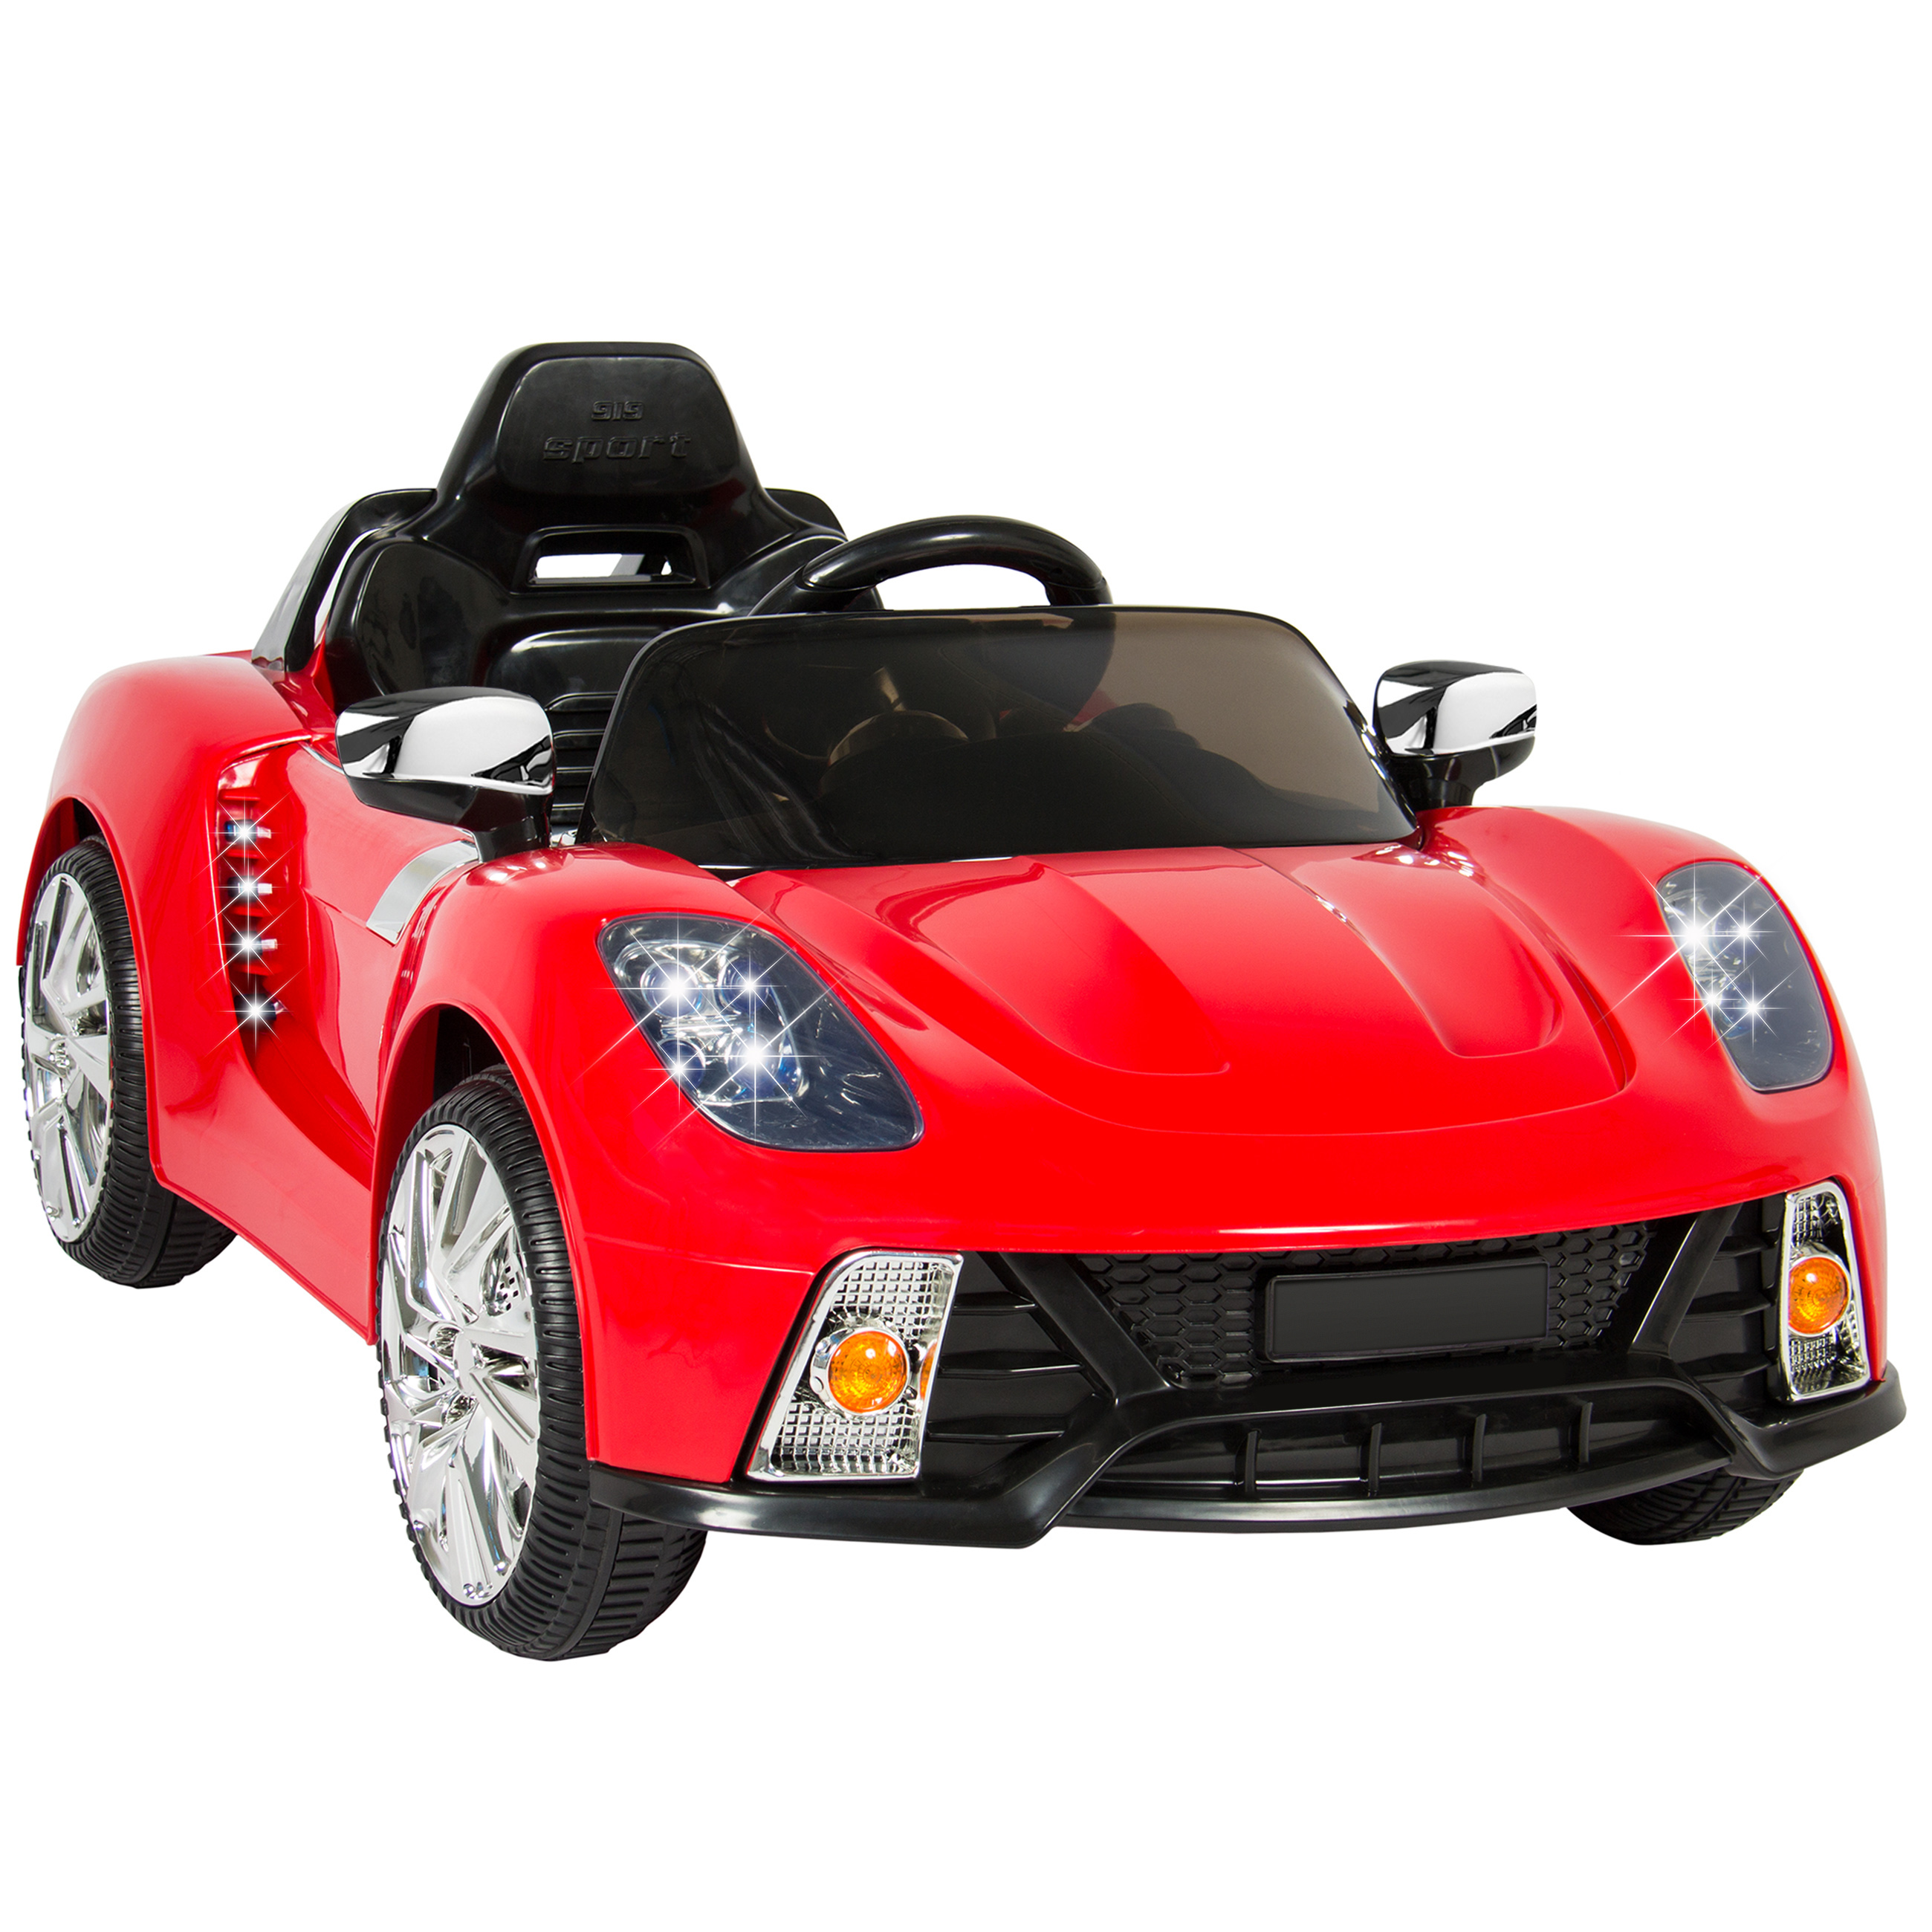 Mini Cars for Kids New Best Choice Products 12v Kids Battery Powered Remote Control